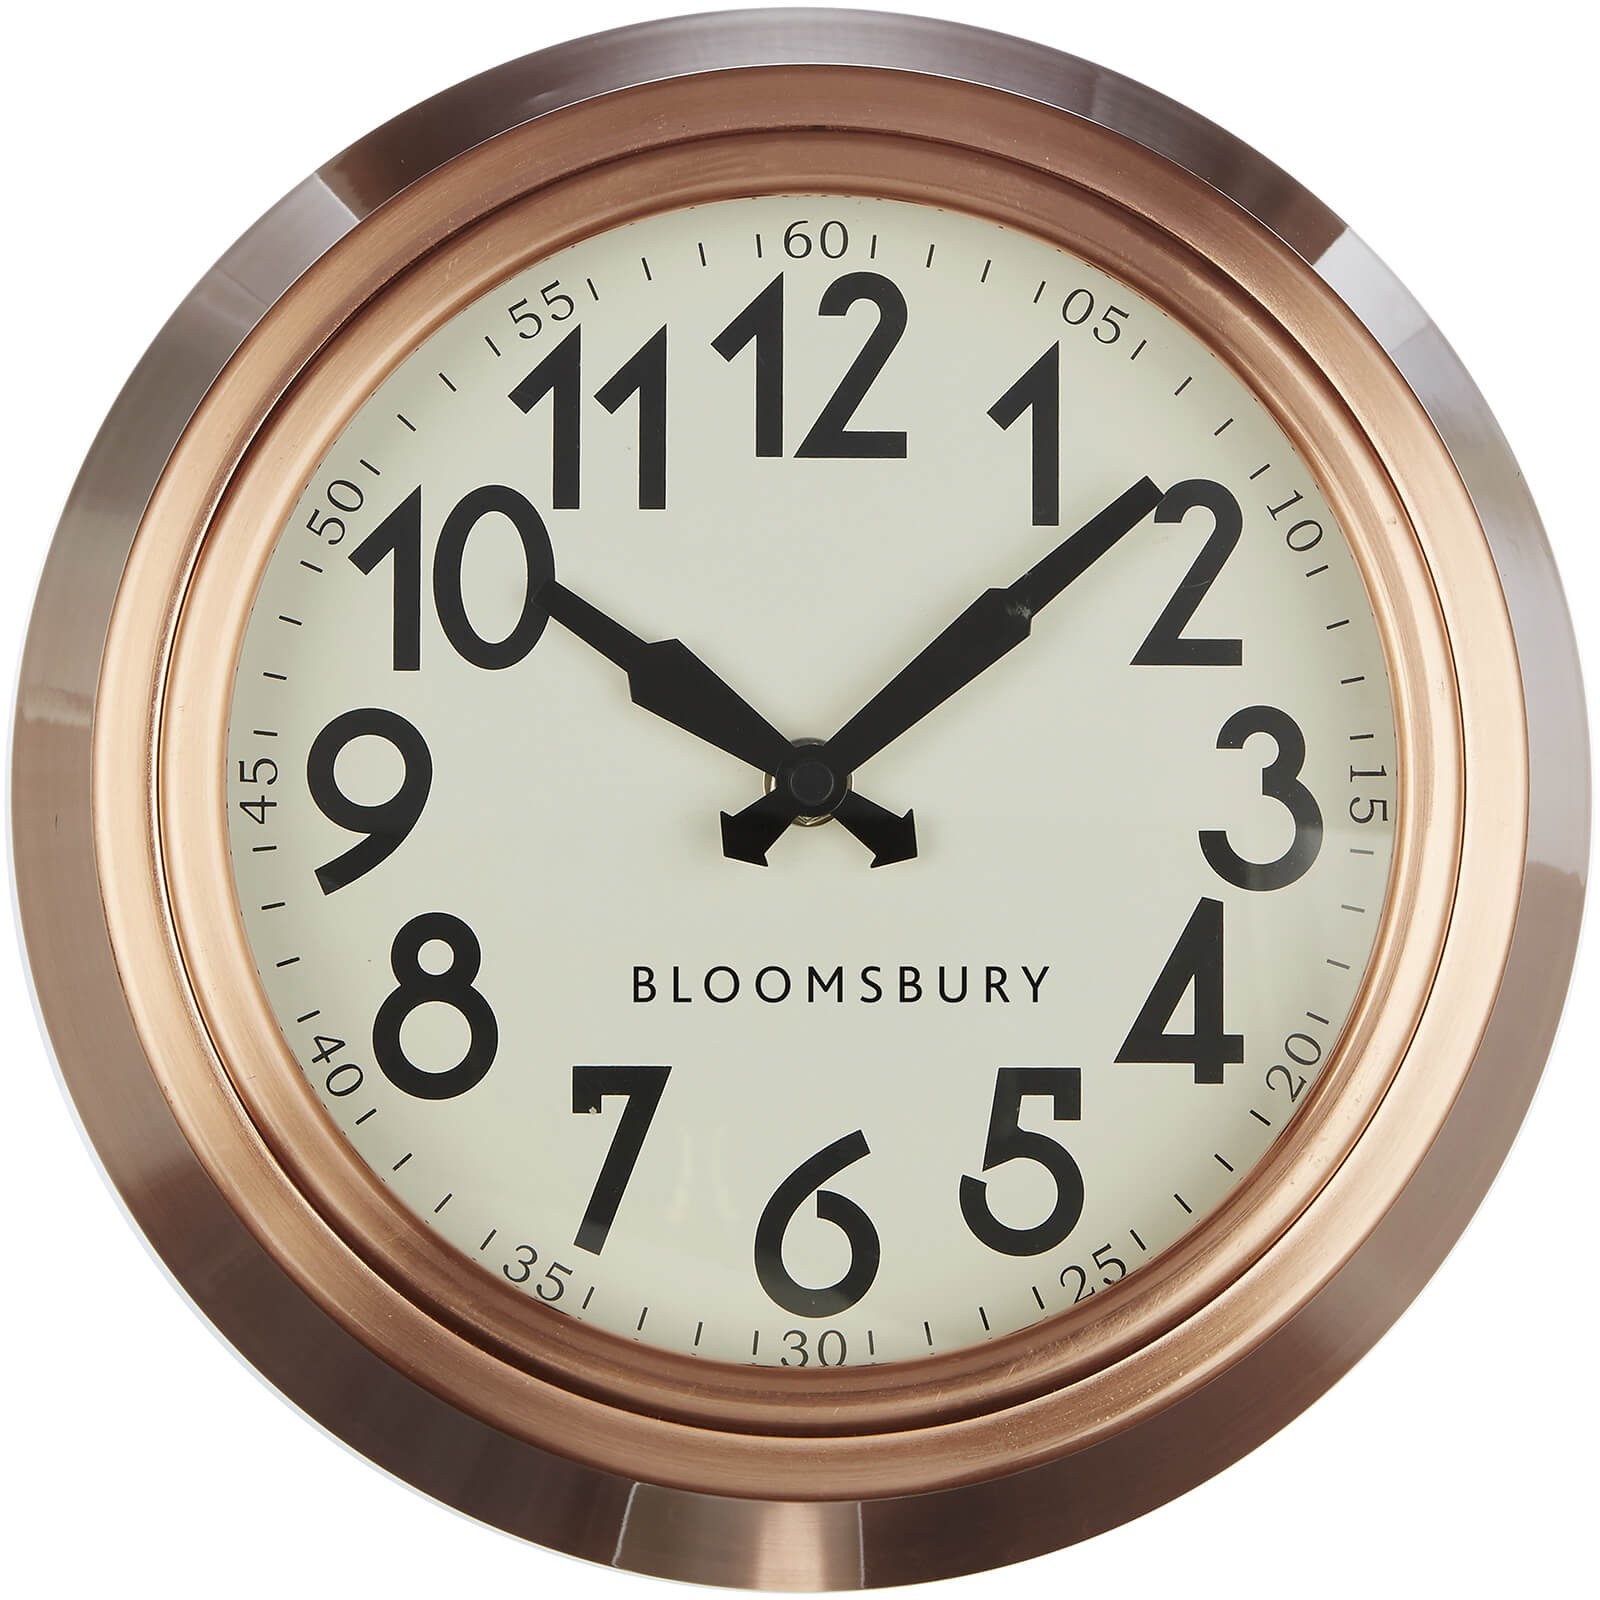 Fifty Five South Great London Wall Clock - Copper Finish